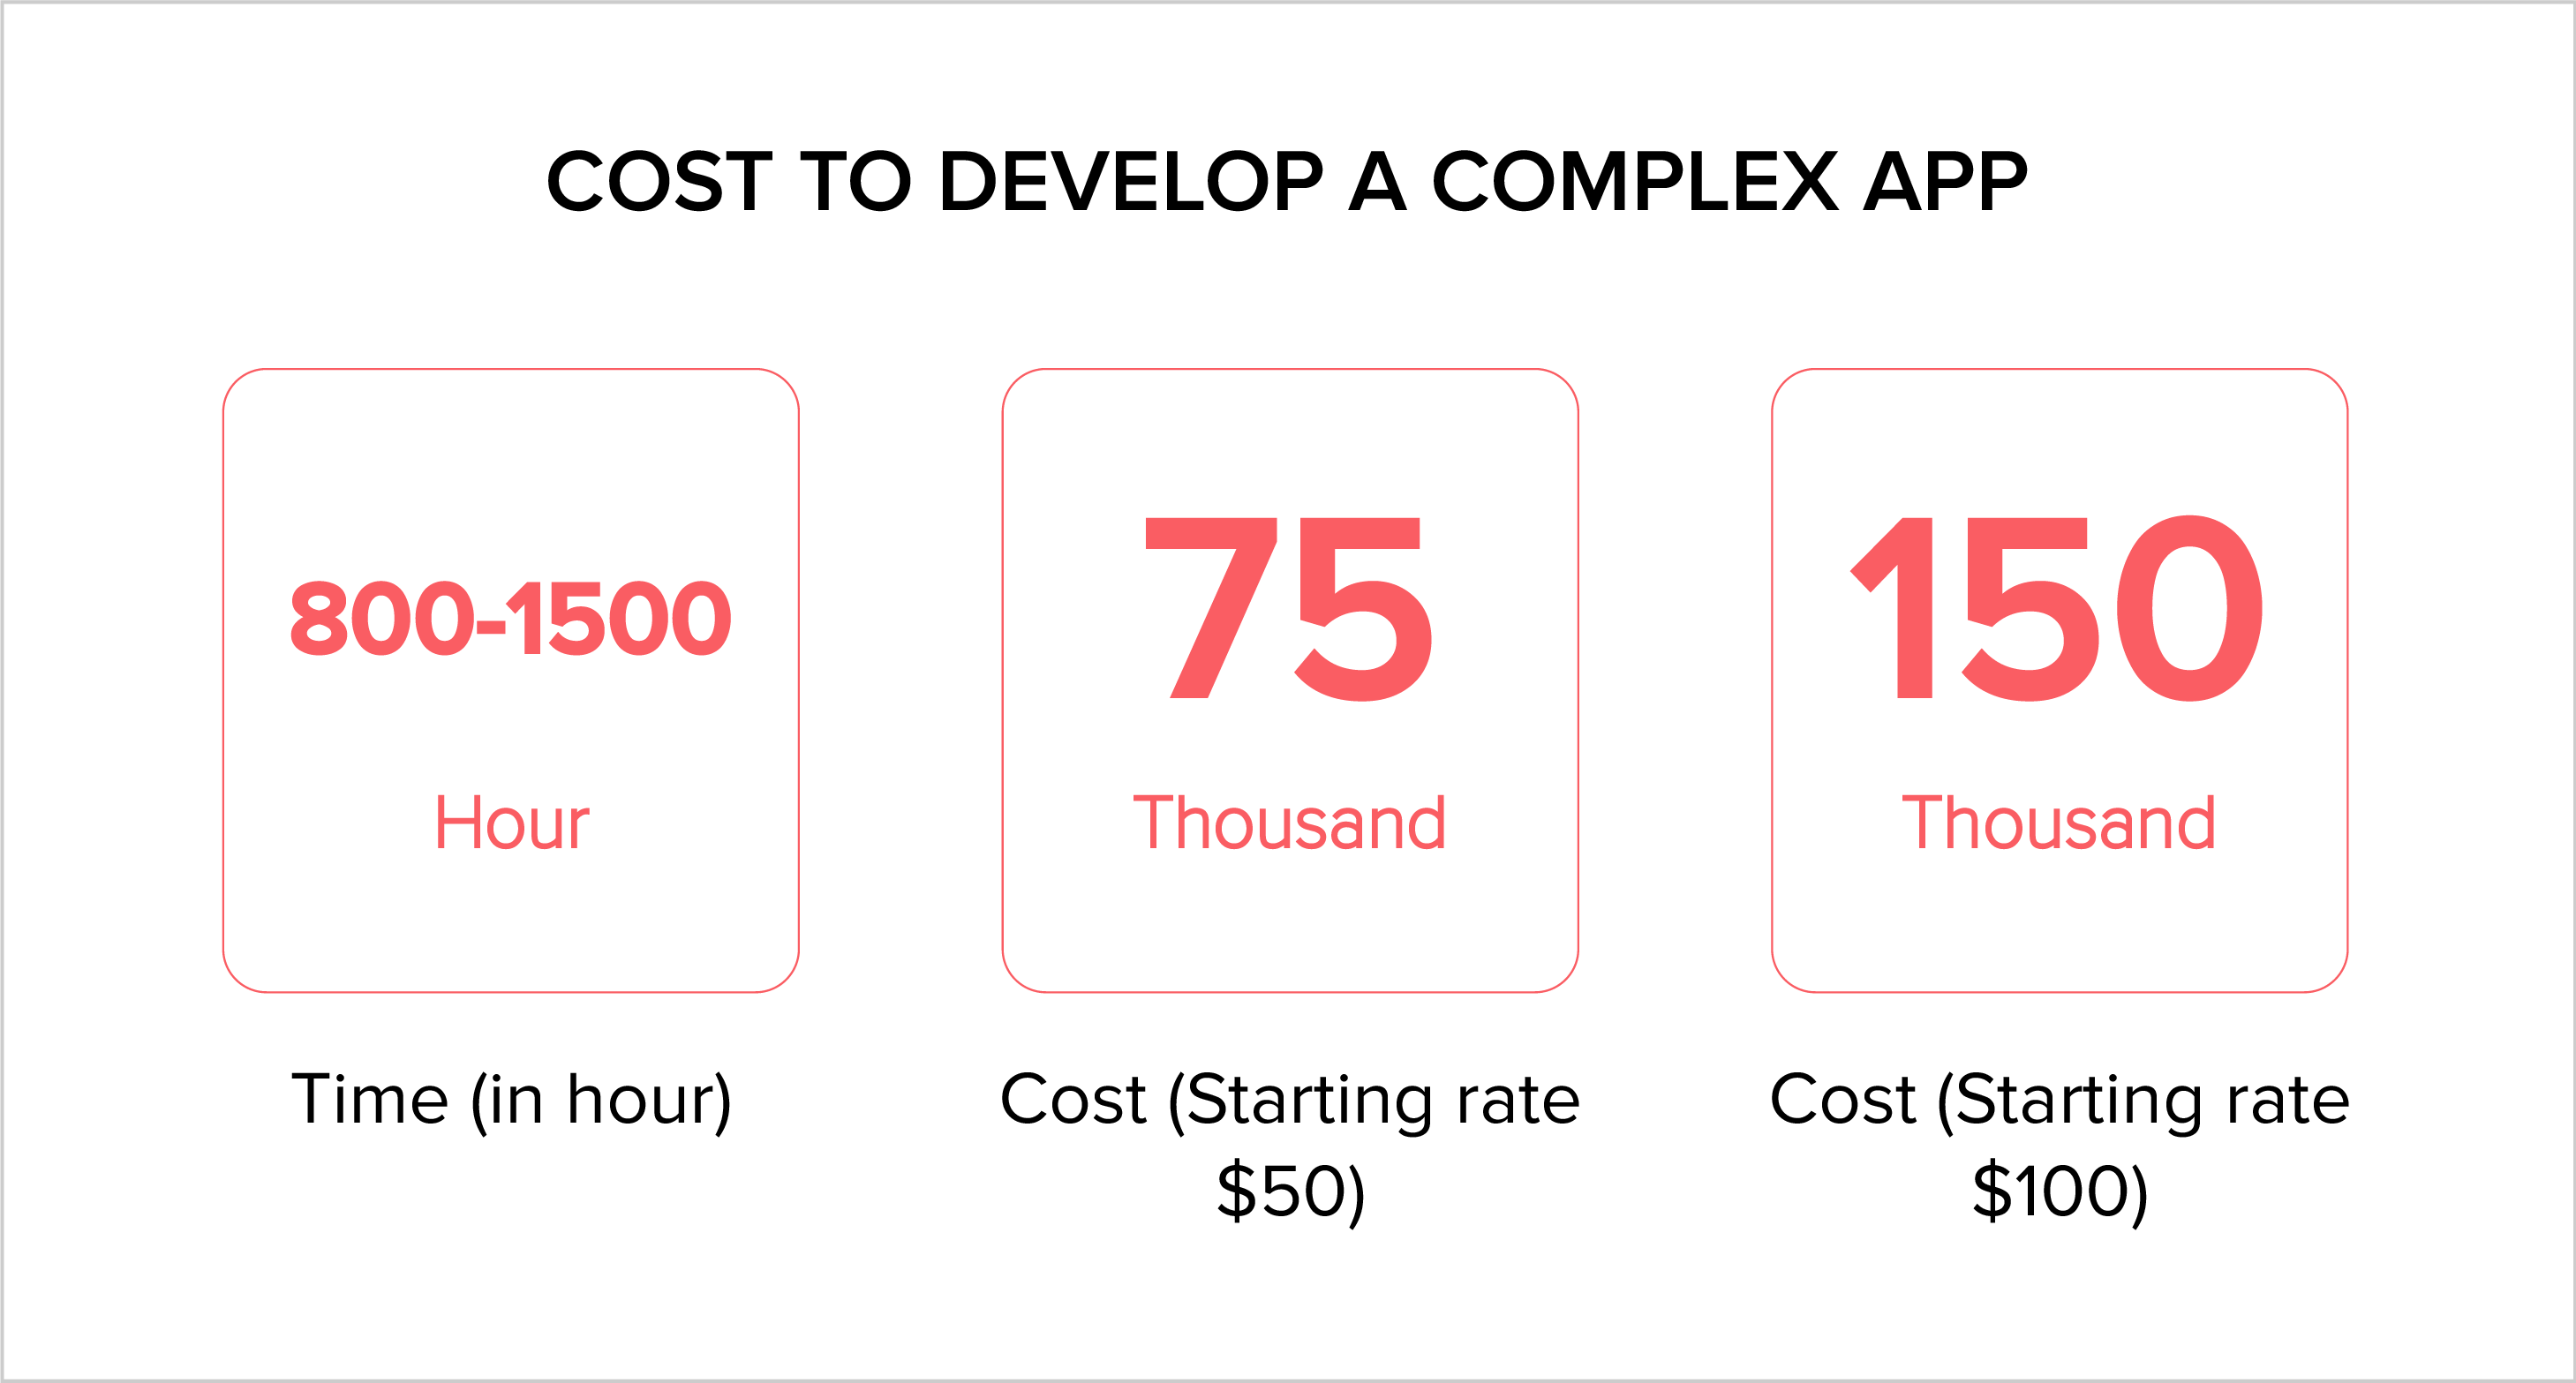 Cost to develop a complex app